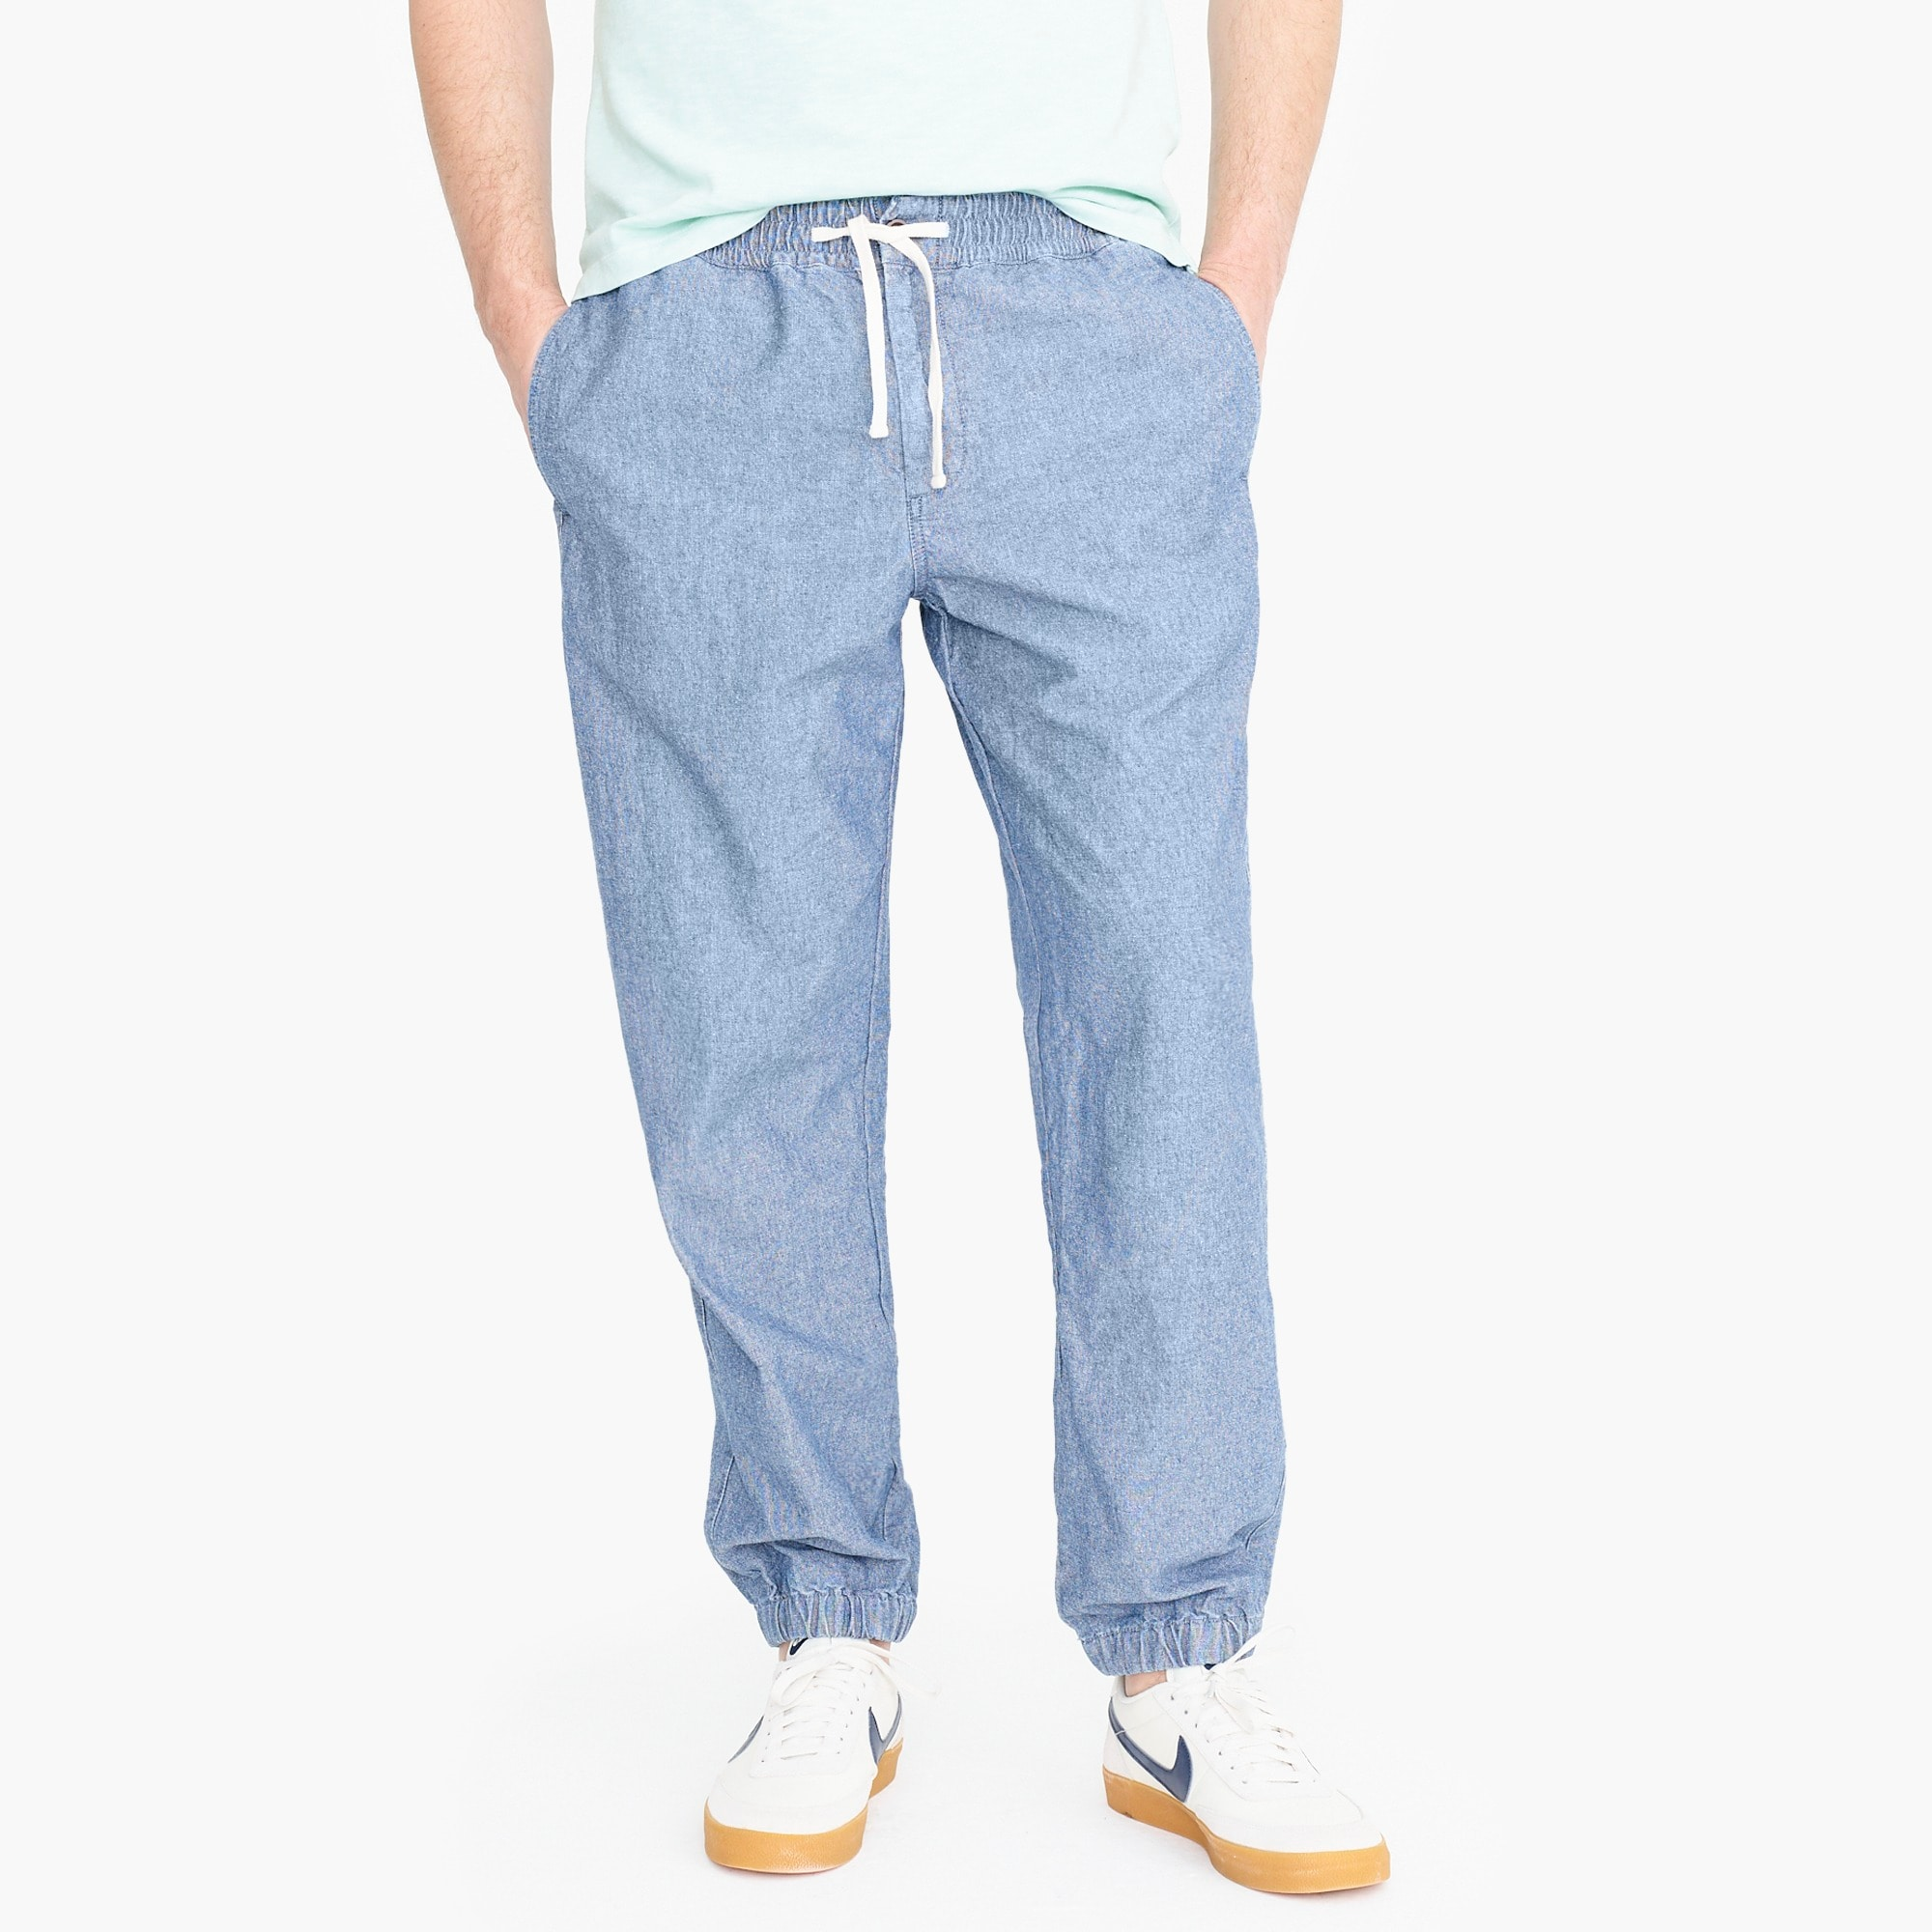 mens Relaxed-fit drawstring pant in indigo chambray